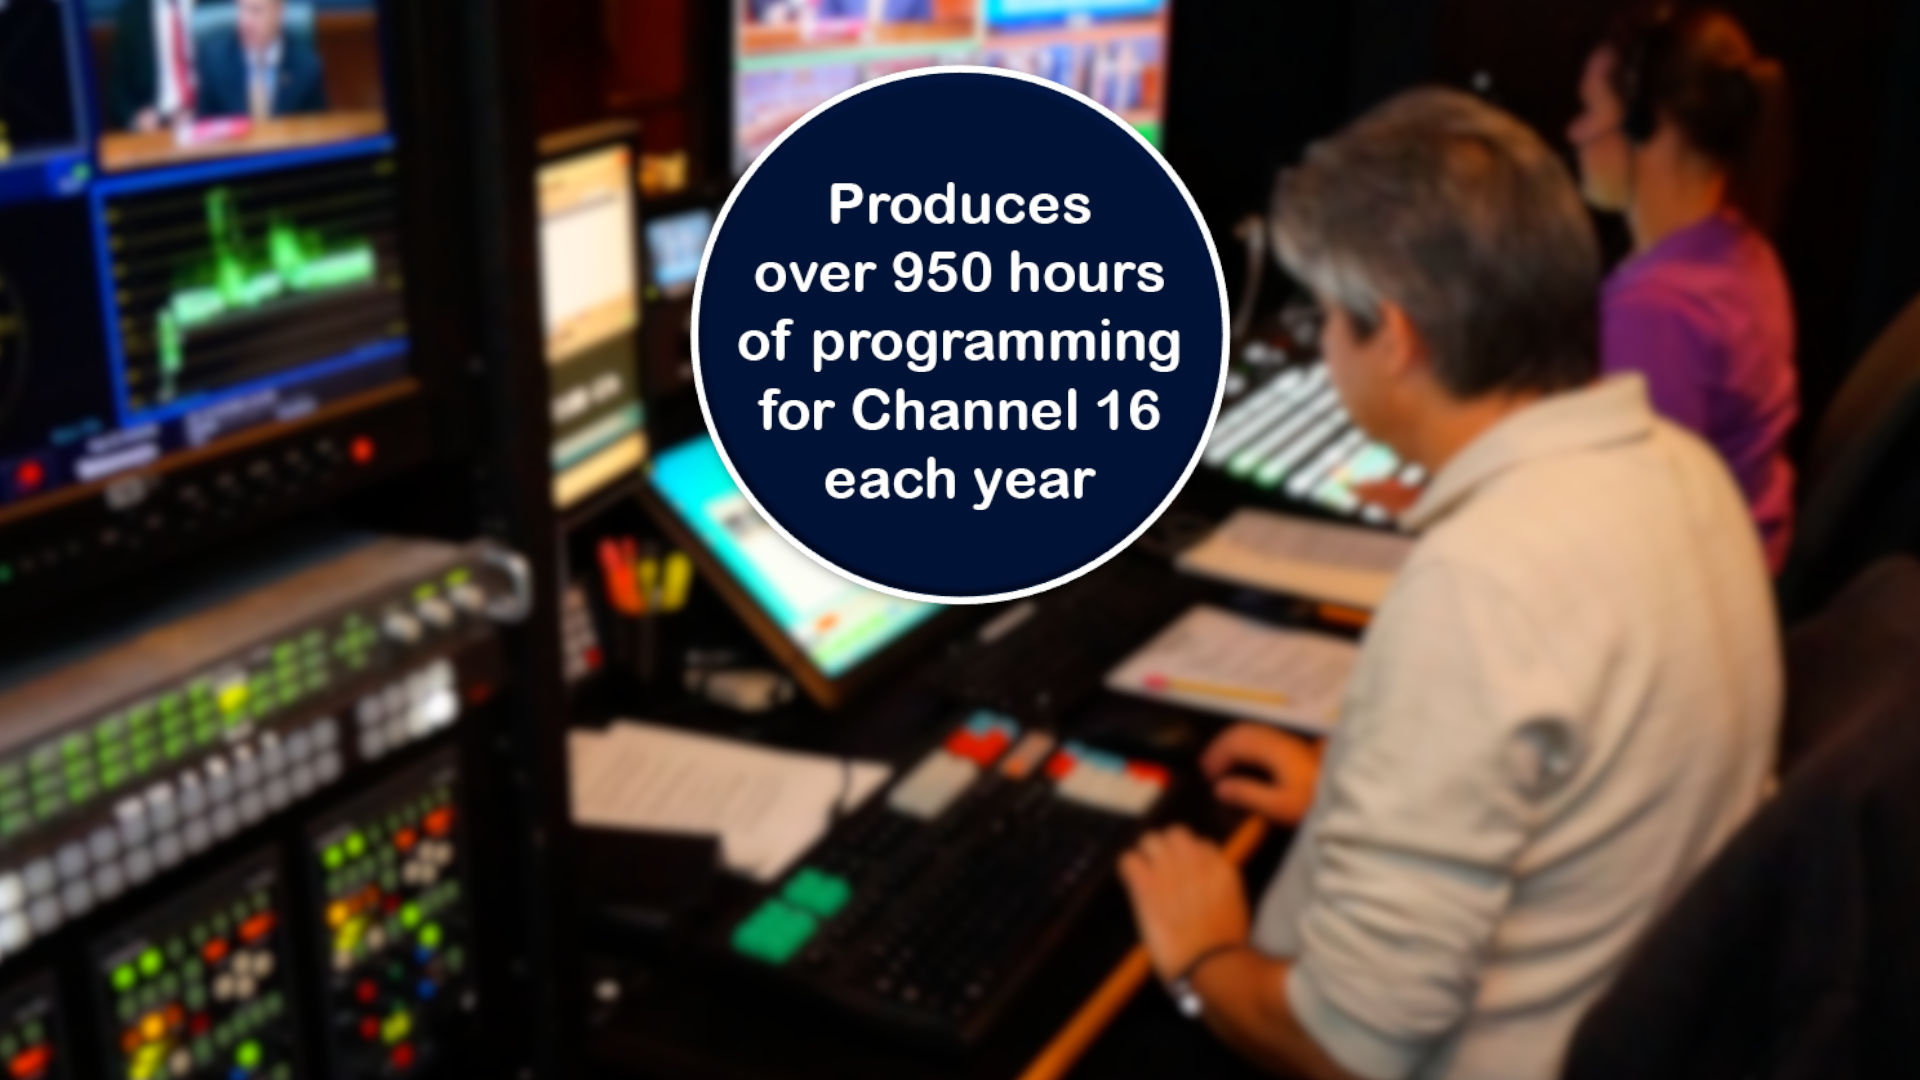 Did You Know DCCS...Channel 16 produces over 950 hours of programming